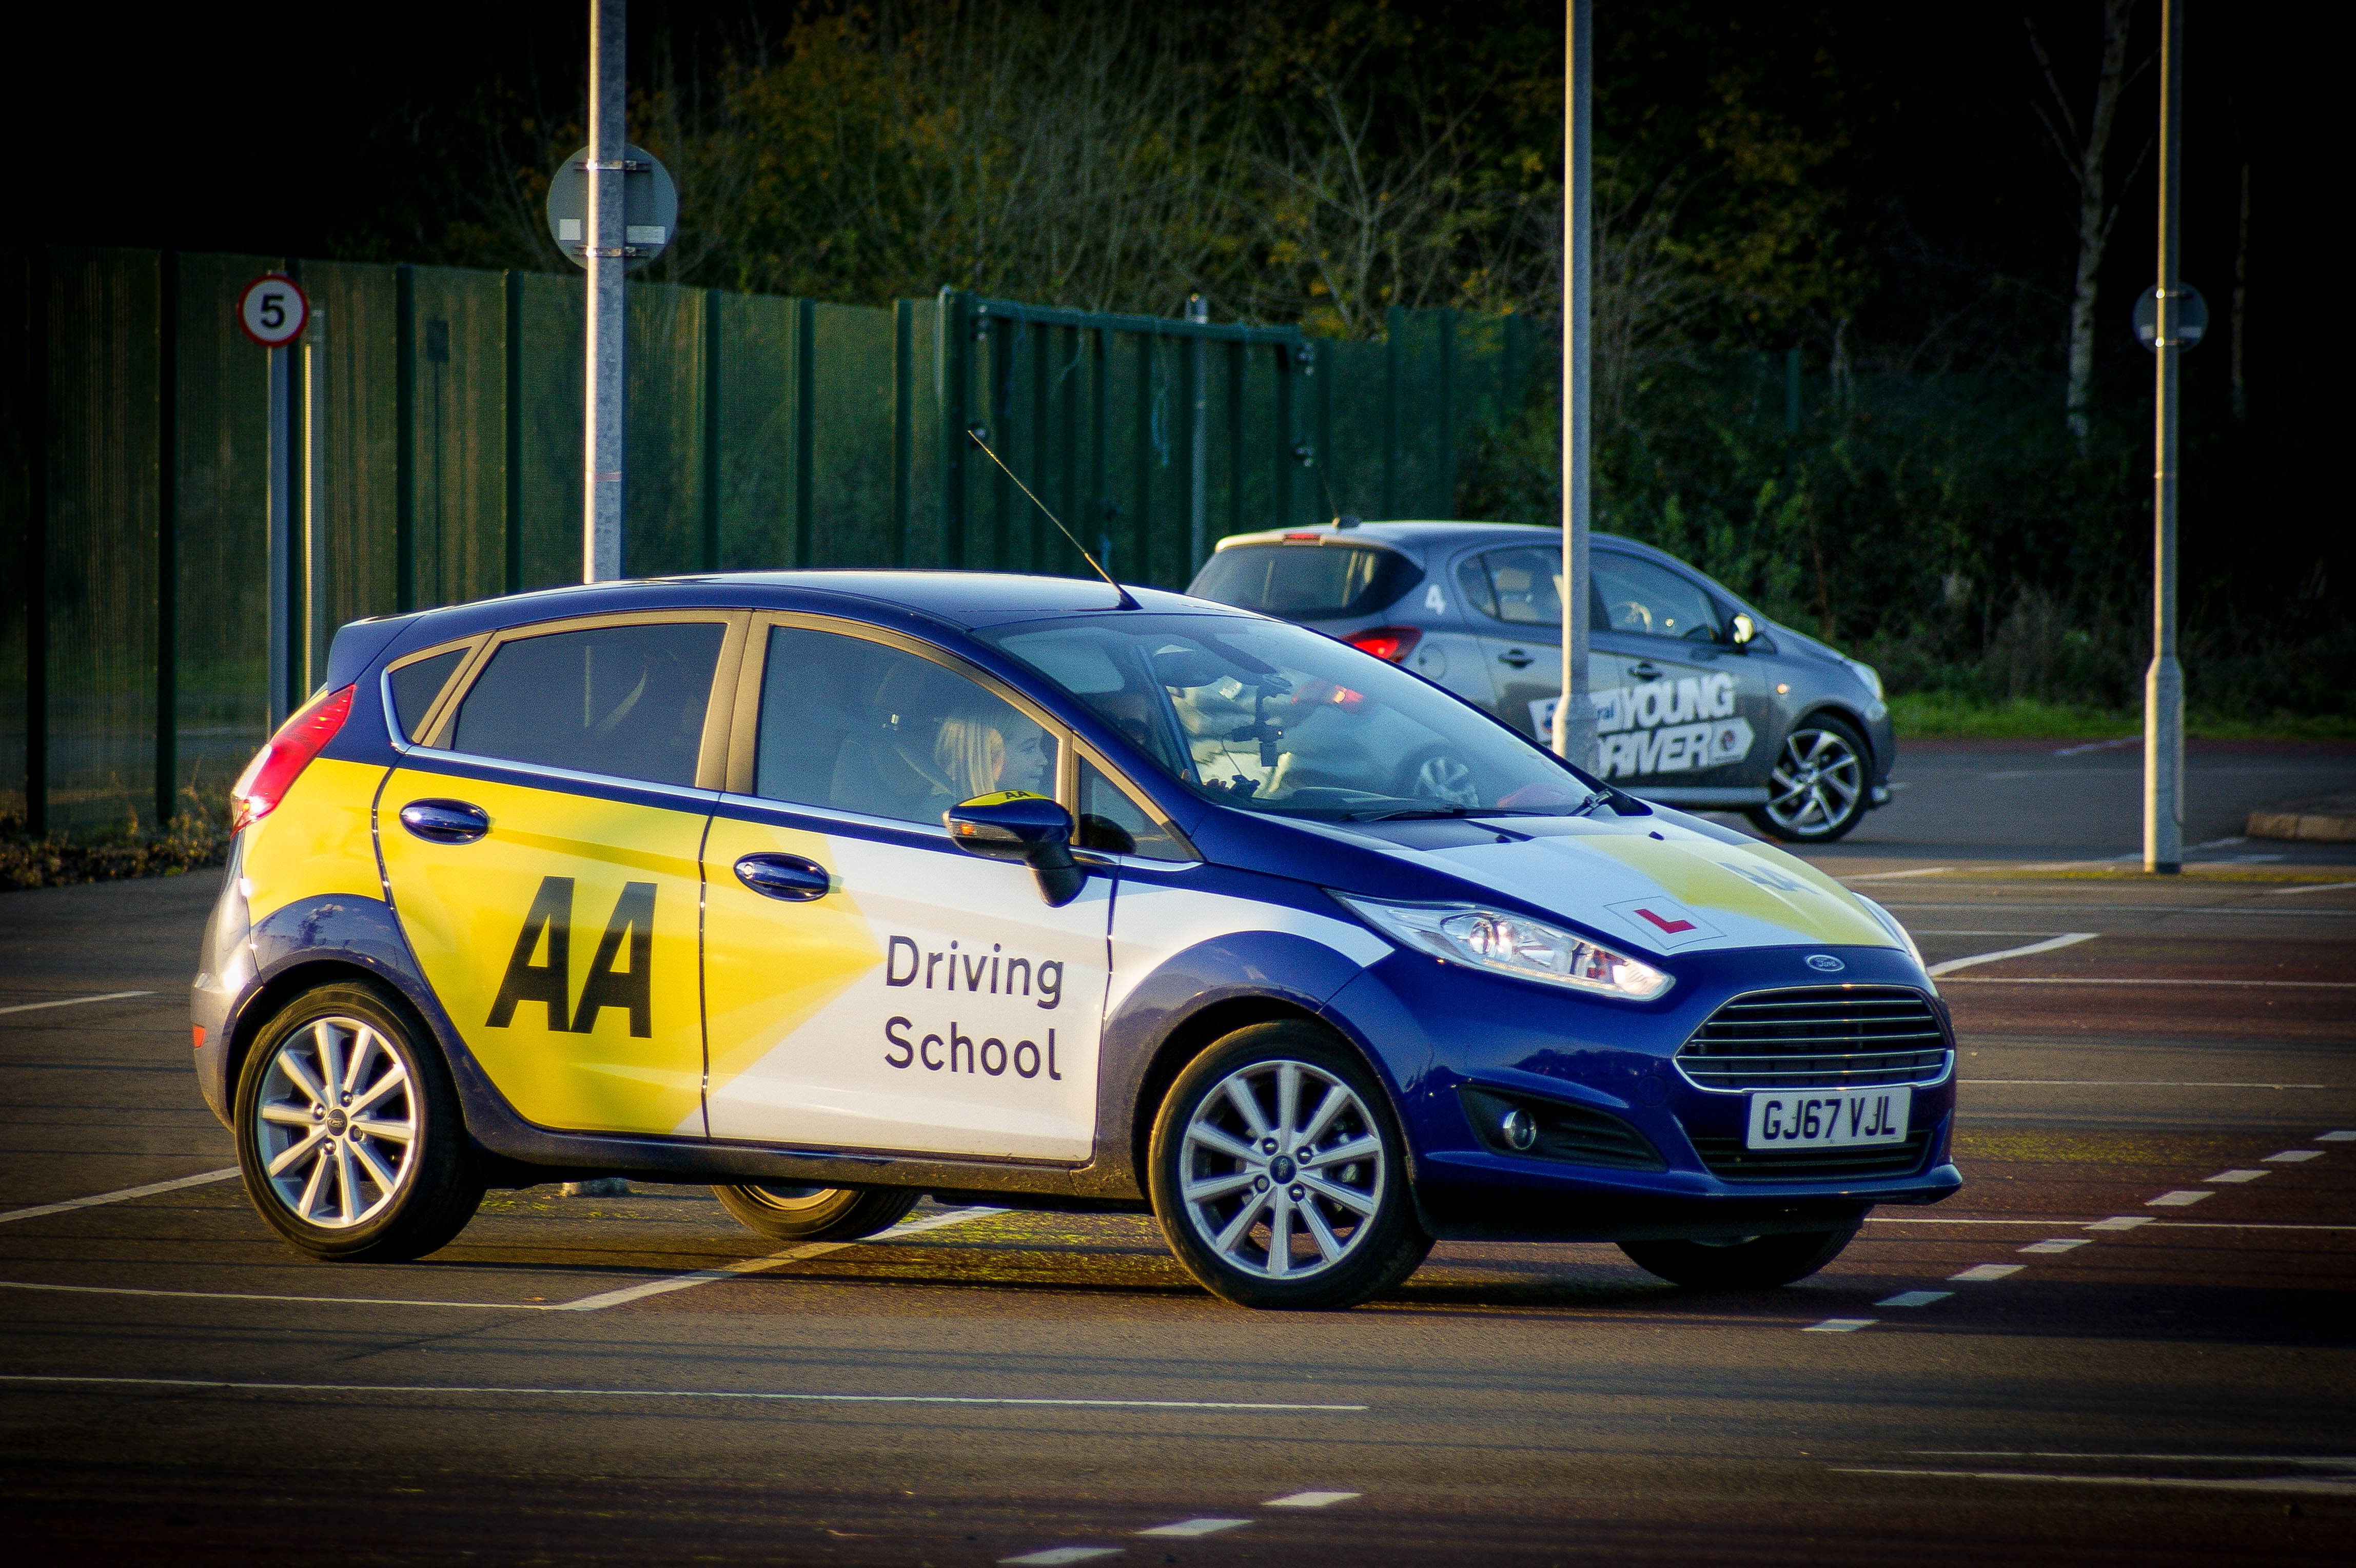 Young Driver, Young, driver, driving lesson, motoring, automotive, Vauxhall, car, cars, learning to drive, driving experience, motoring, automotive, Ford, Fiesta, Ford Fiesta, Vauxhall Corsa